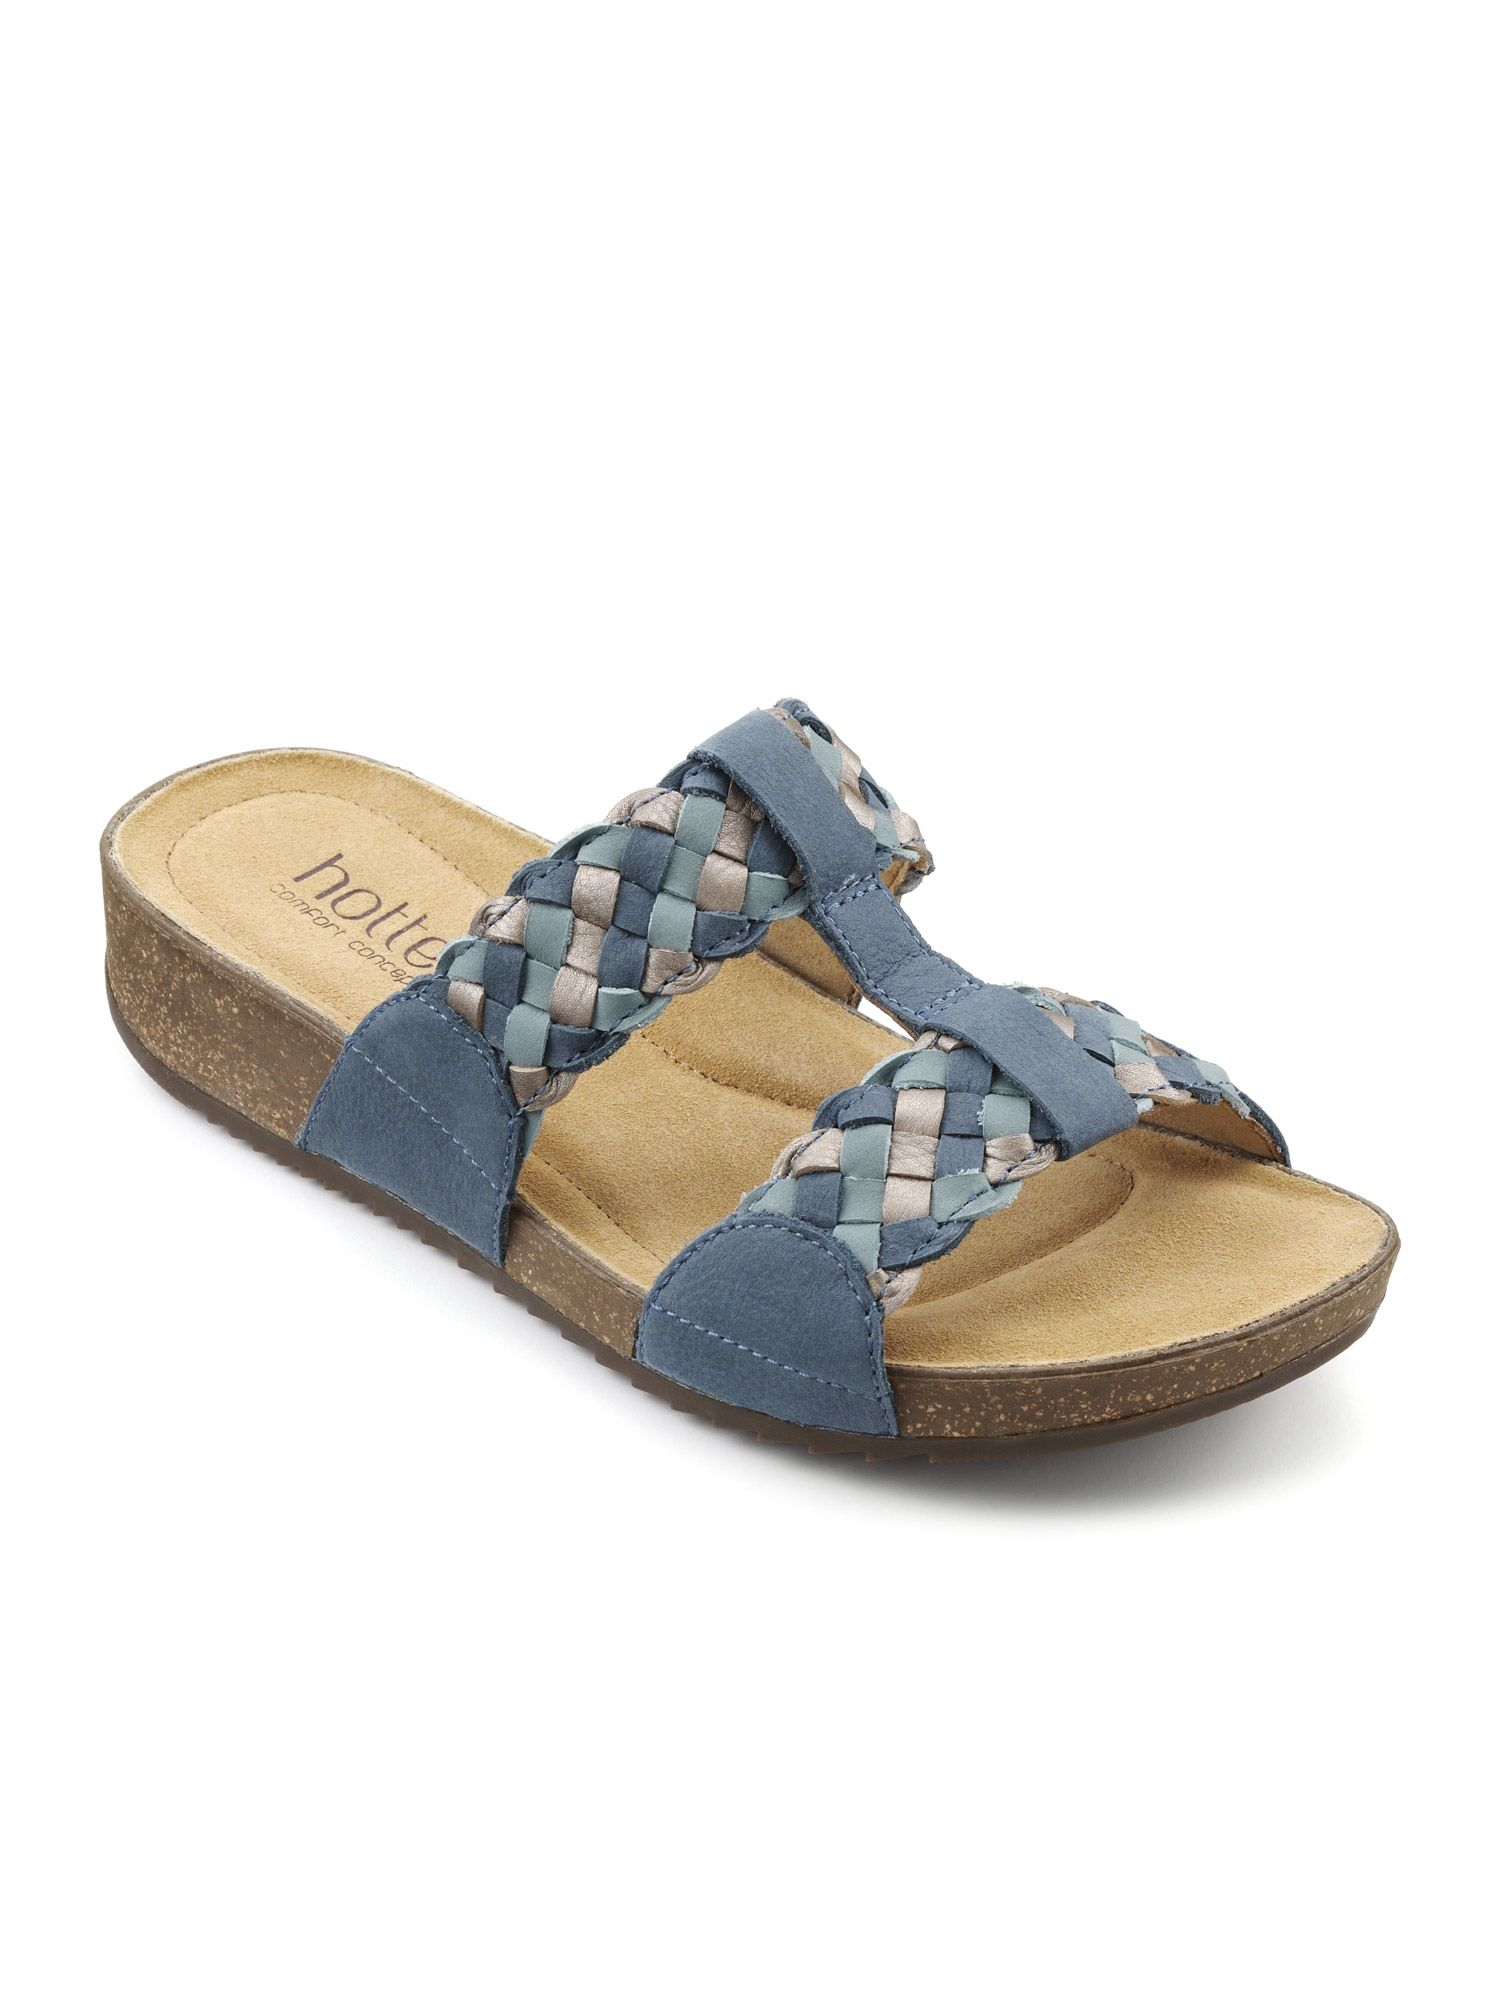 Hotter Escape Stylish Hotter Sandal, Blue